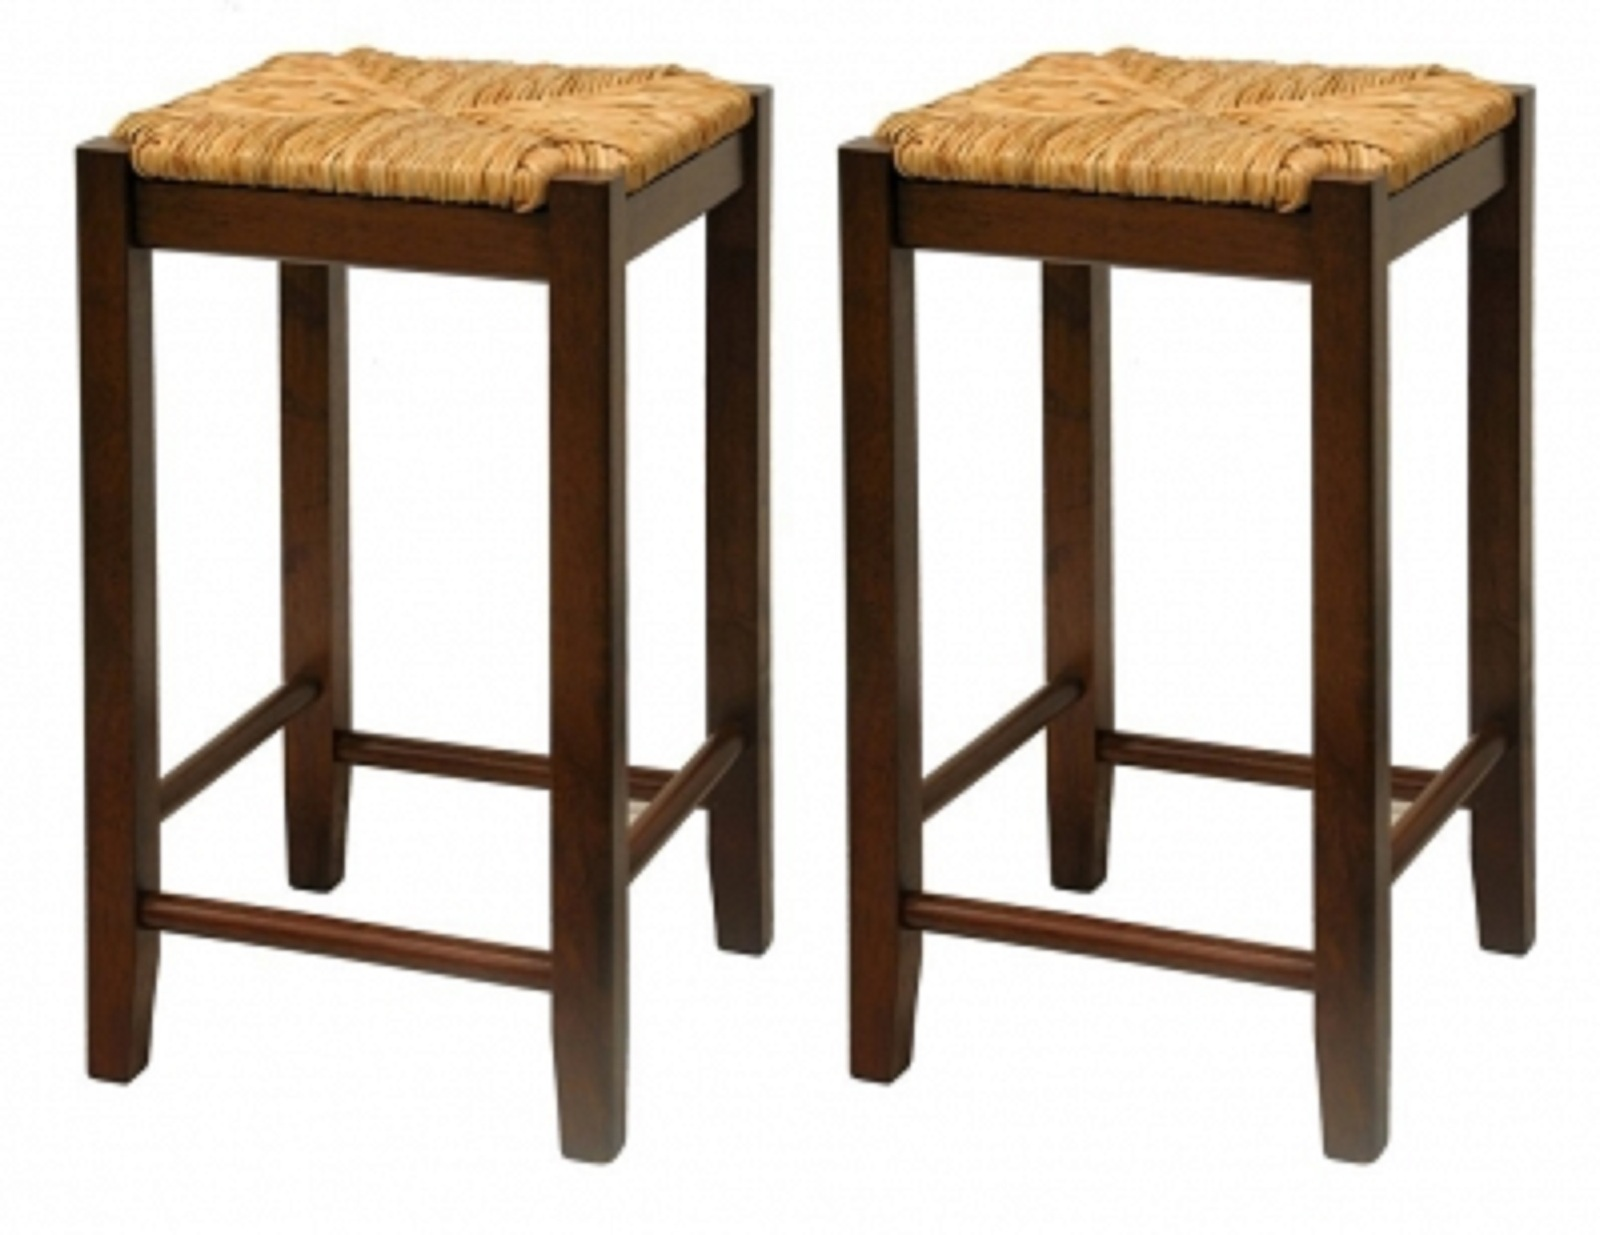 24 inch counter chairs oversized club chair bar stools wood walnut kitchen